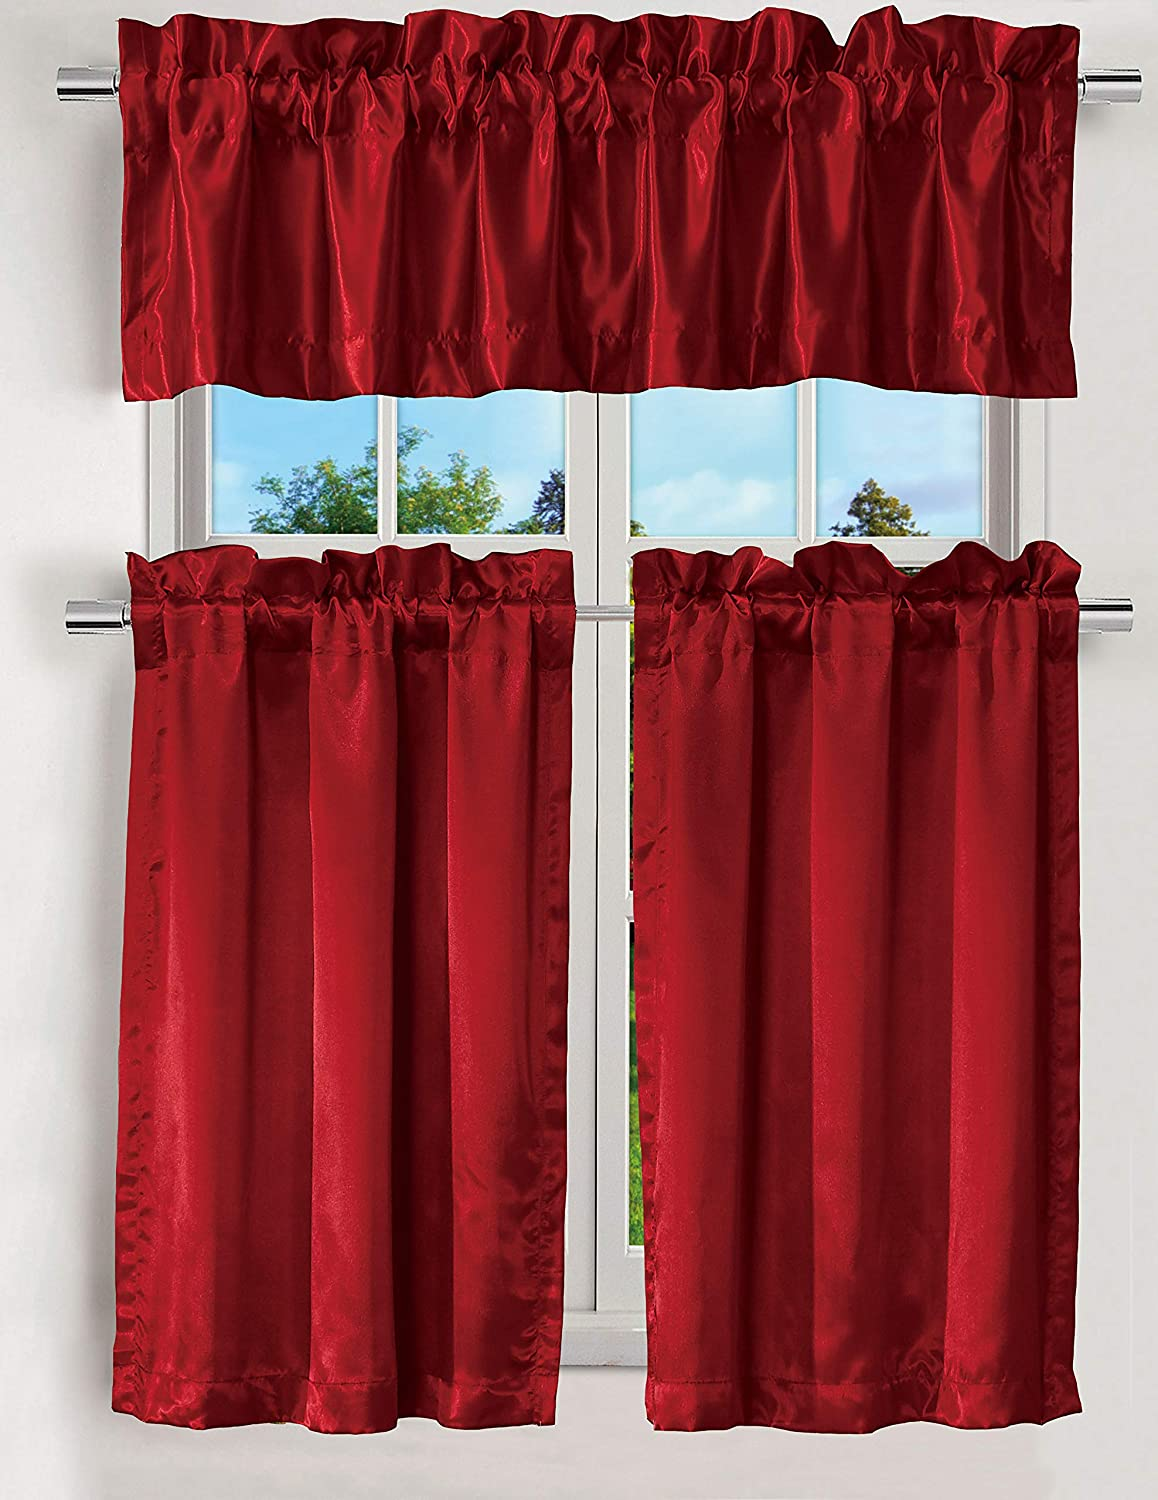 """EliteHomeProducts 3PC Kitchen Curtain Set, 1 Valance, 2 Tiers, Solid Color (Red, 36"""" Tiers, 14"""" Straight Valance)"""